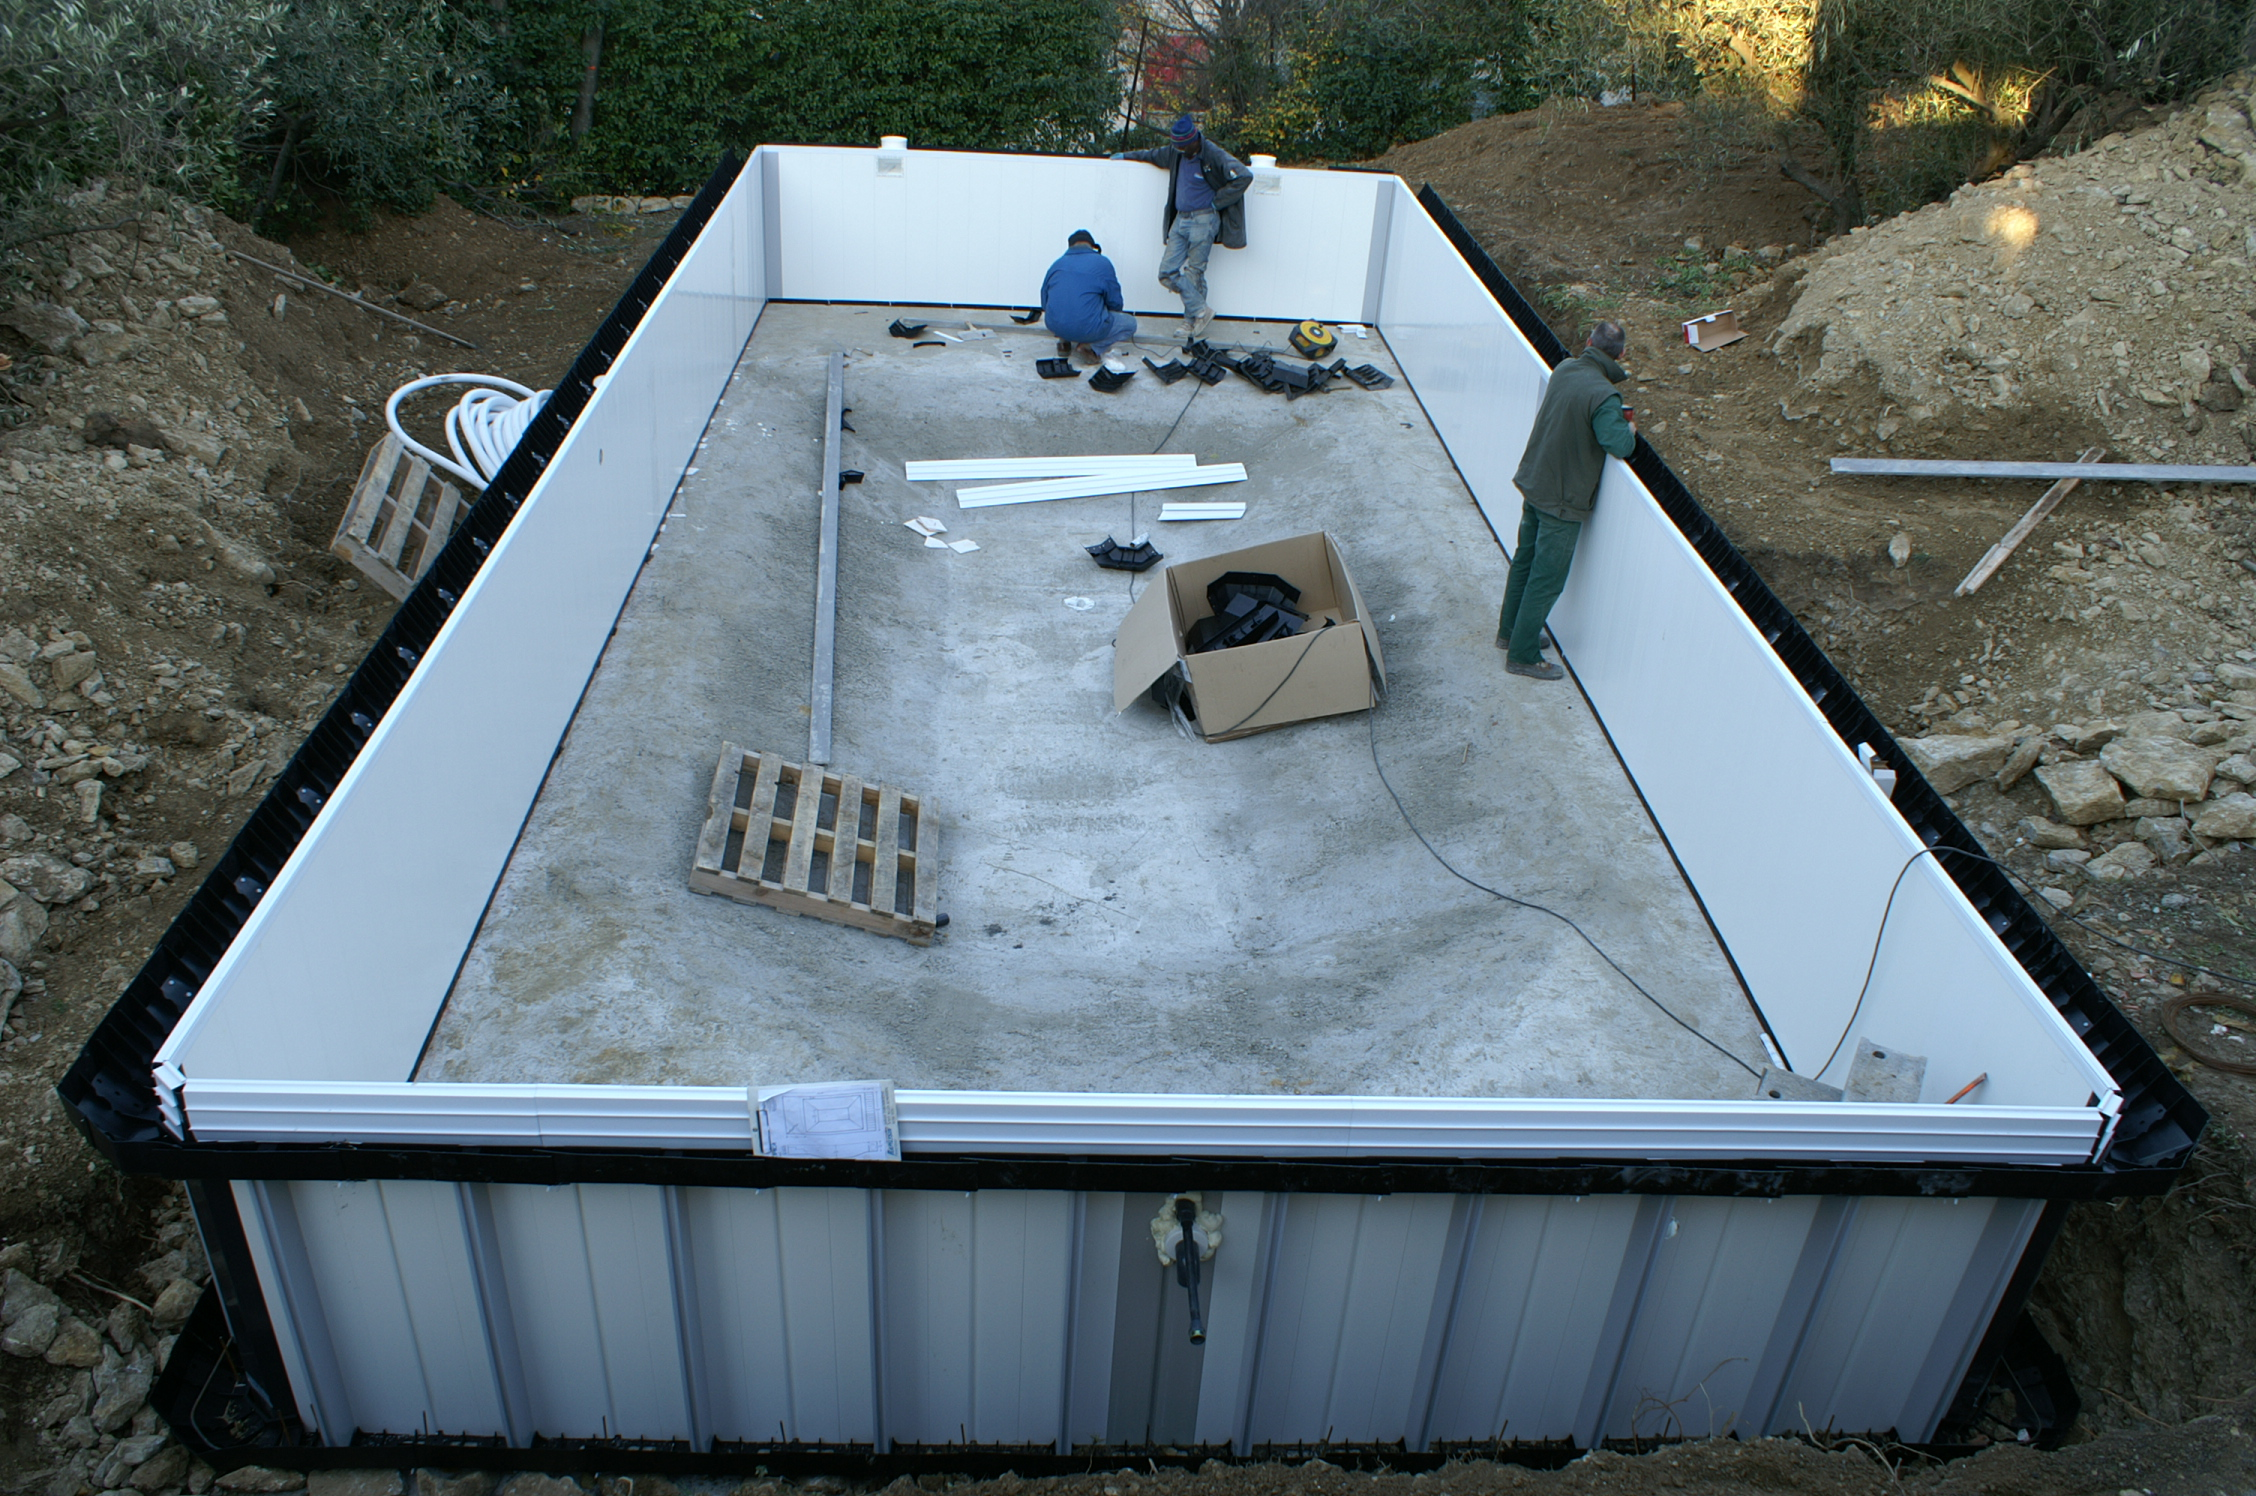 Construction piscines nimes gepad piscines et spa 30000 for Piscine enterree en kit